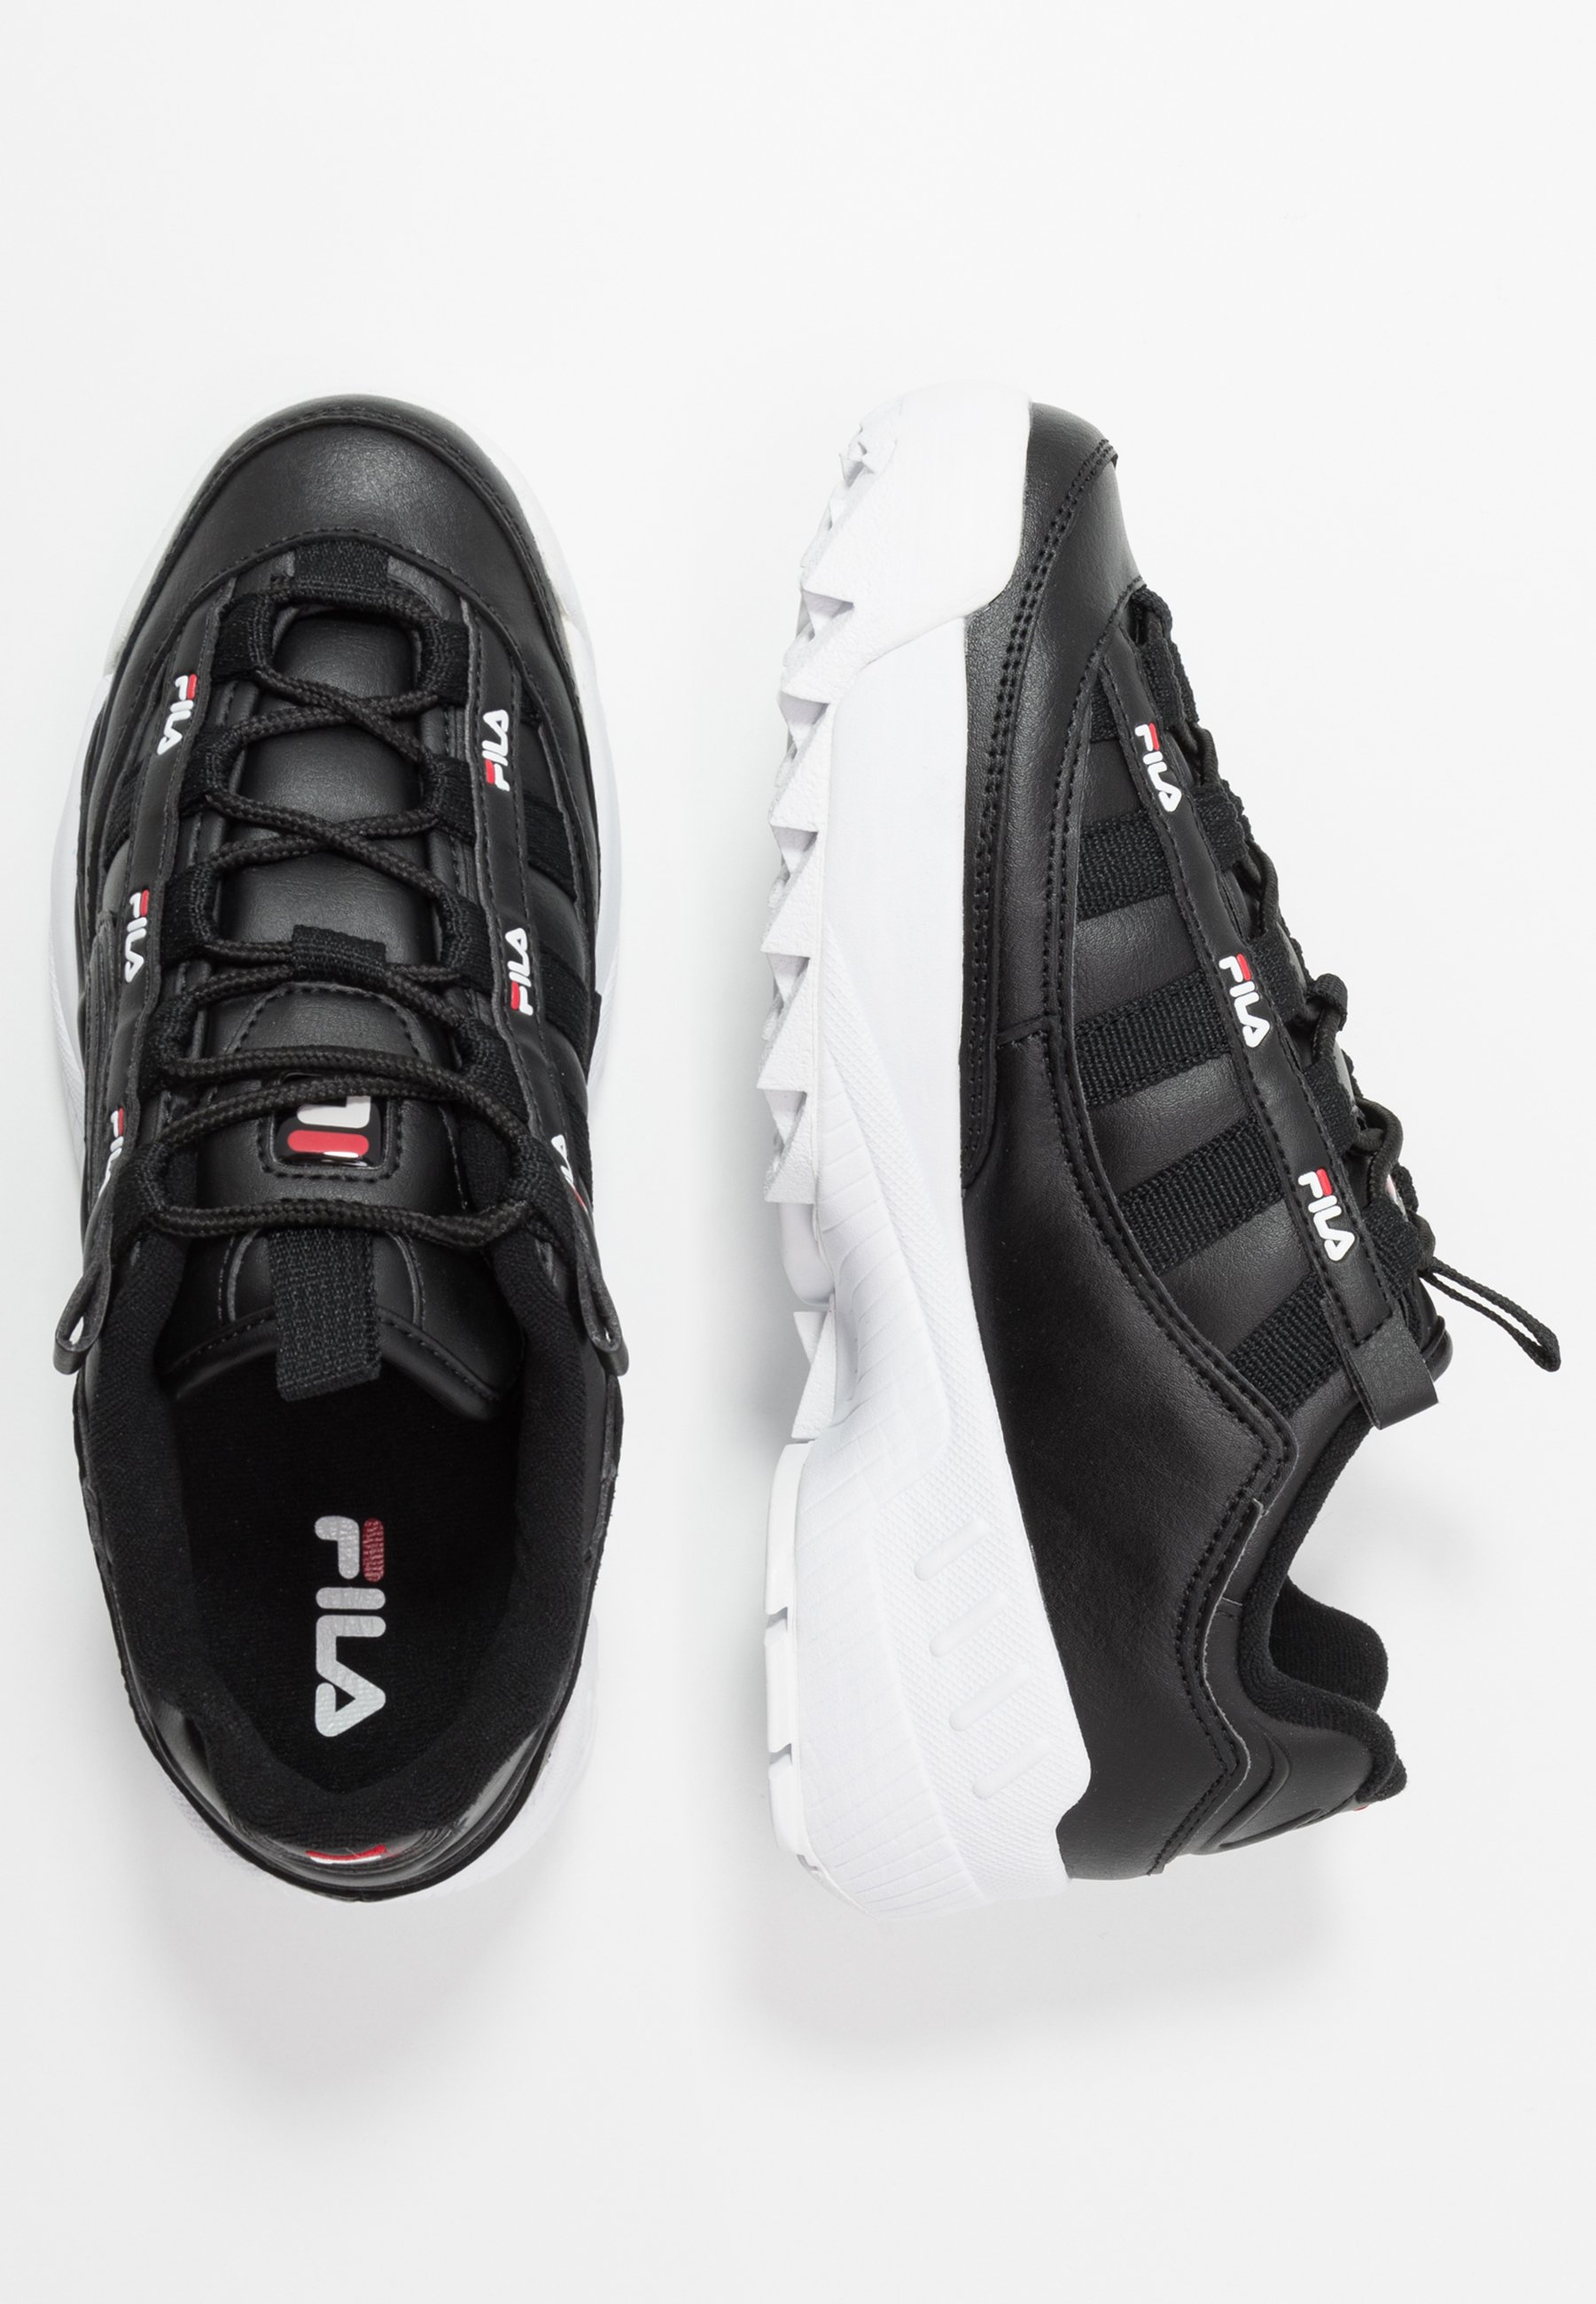 Fila D-formation - Sneakers Black/white/red